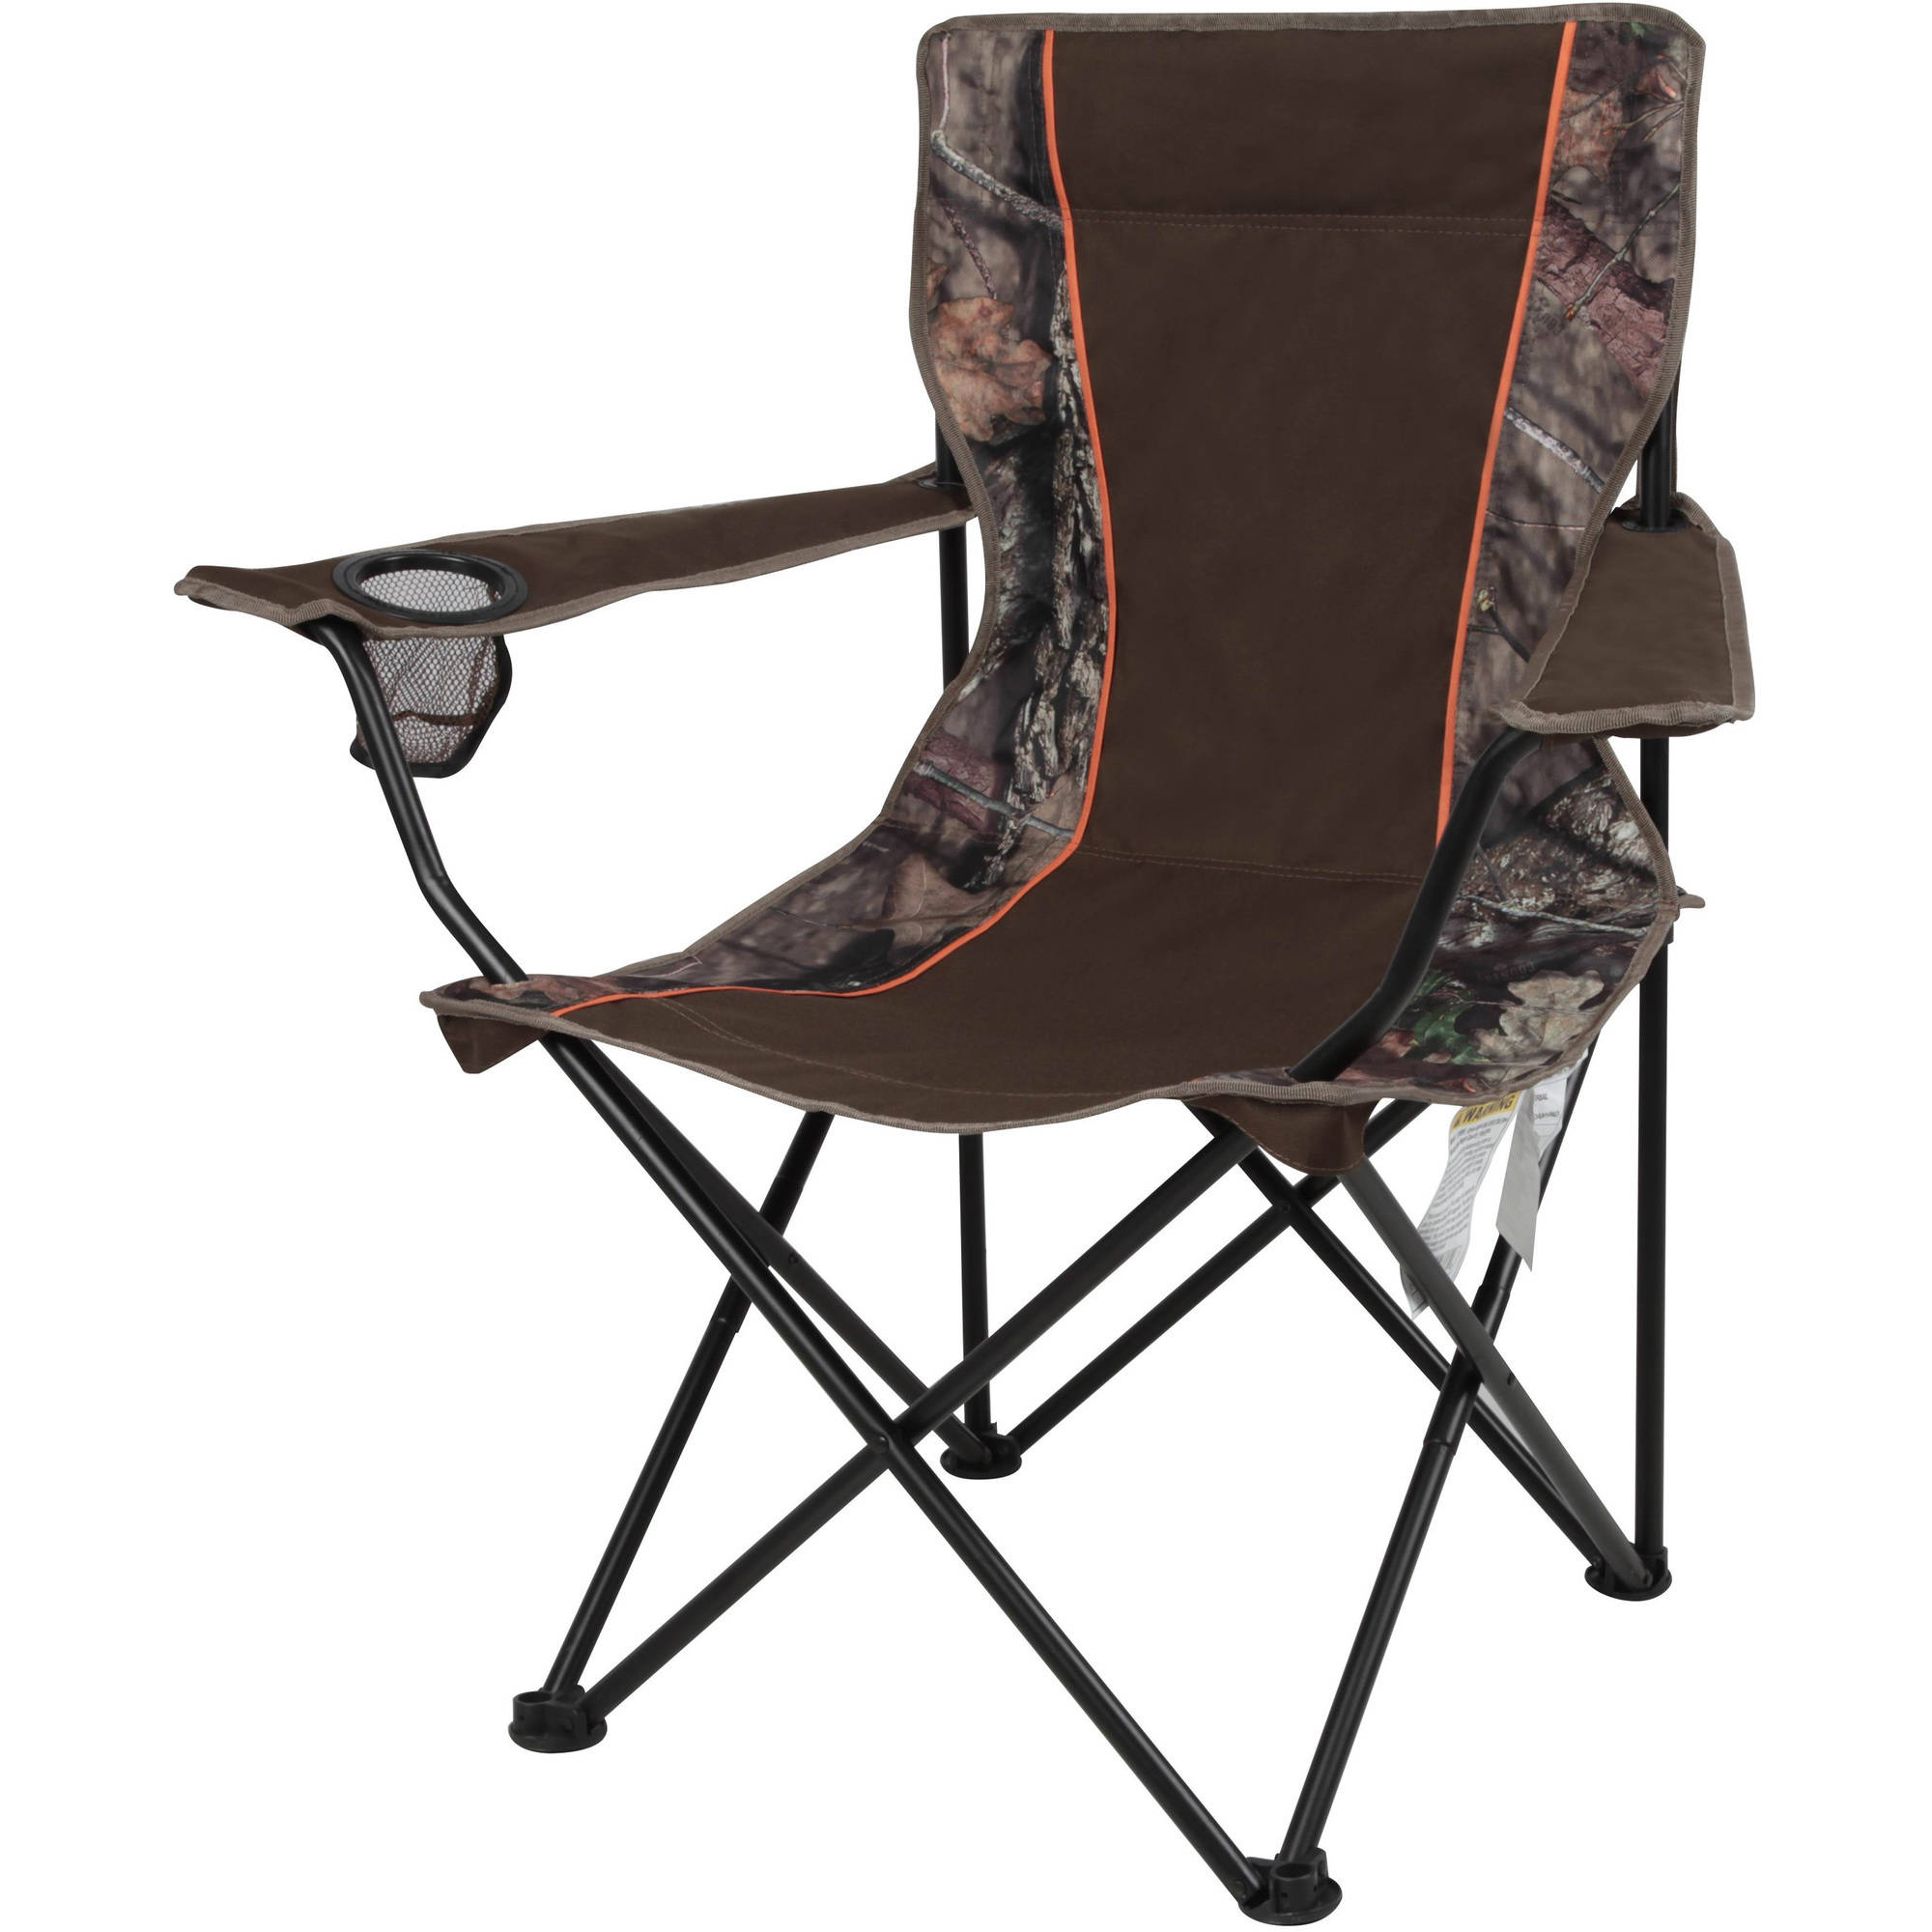 Basic Mossy Oak Camo Chair